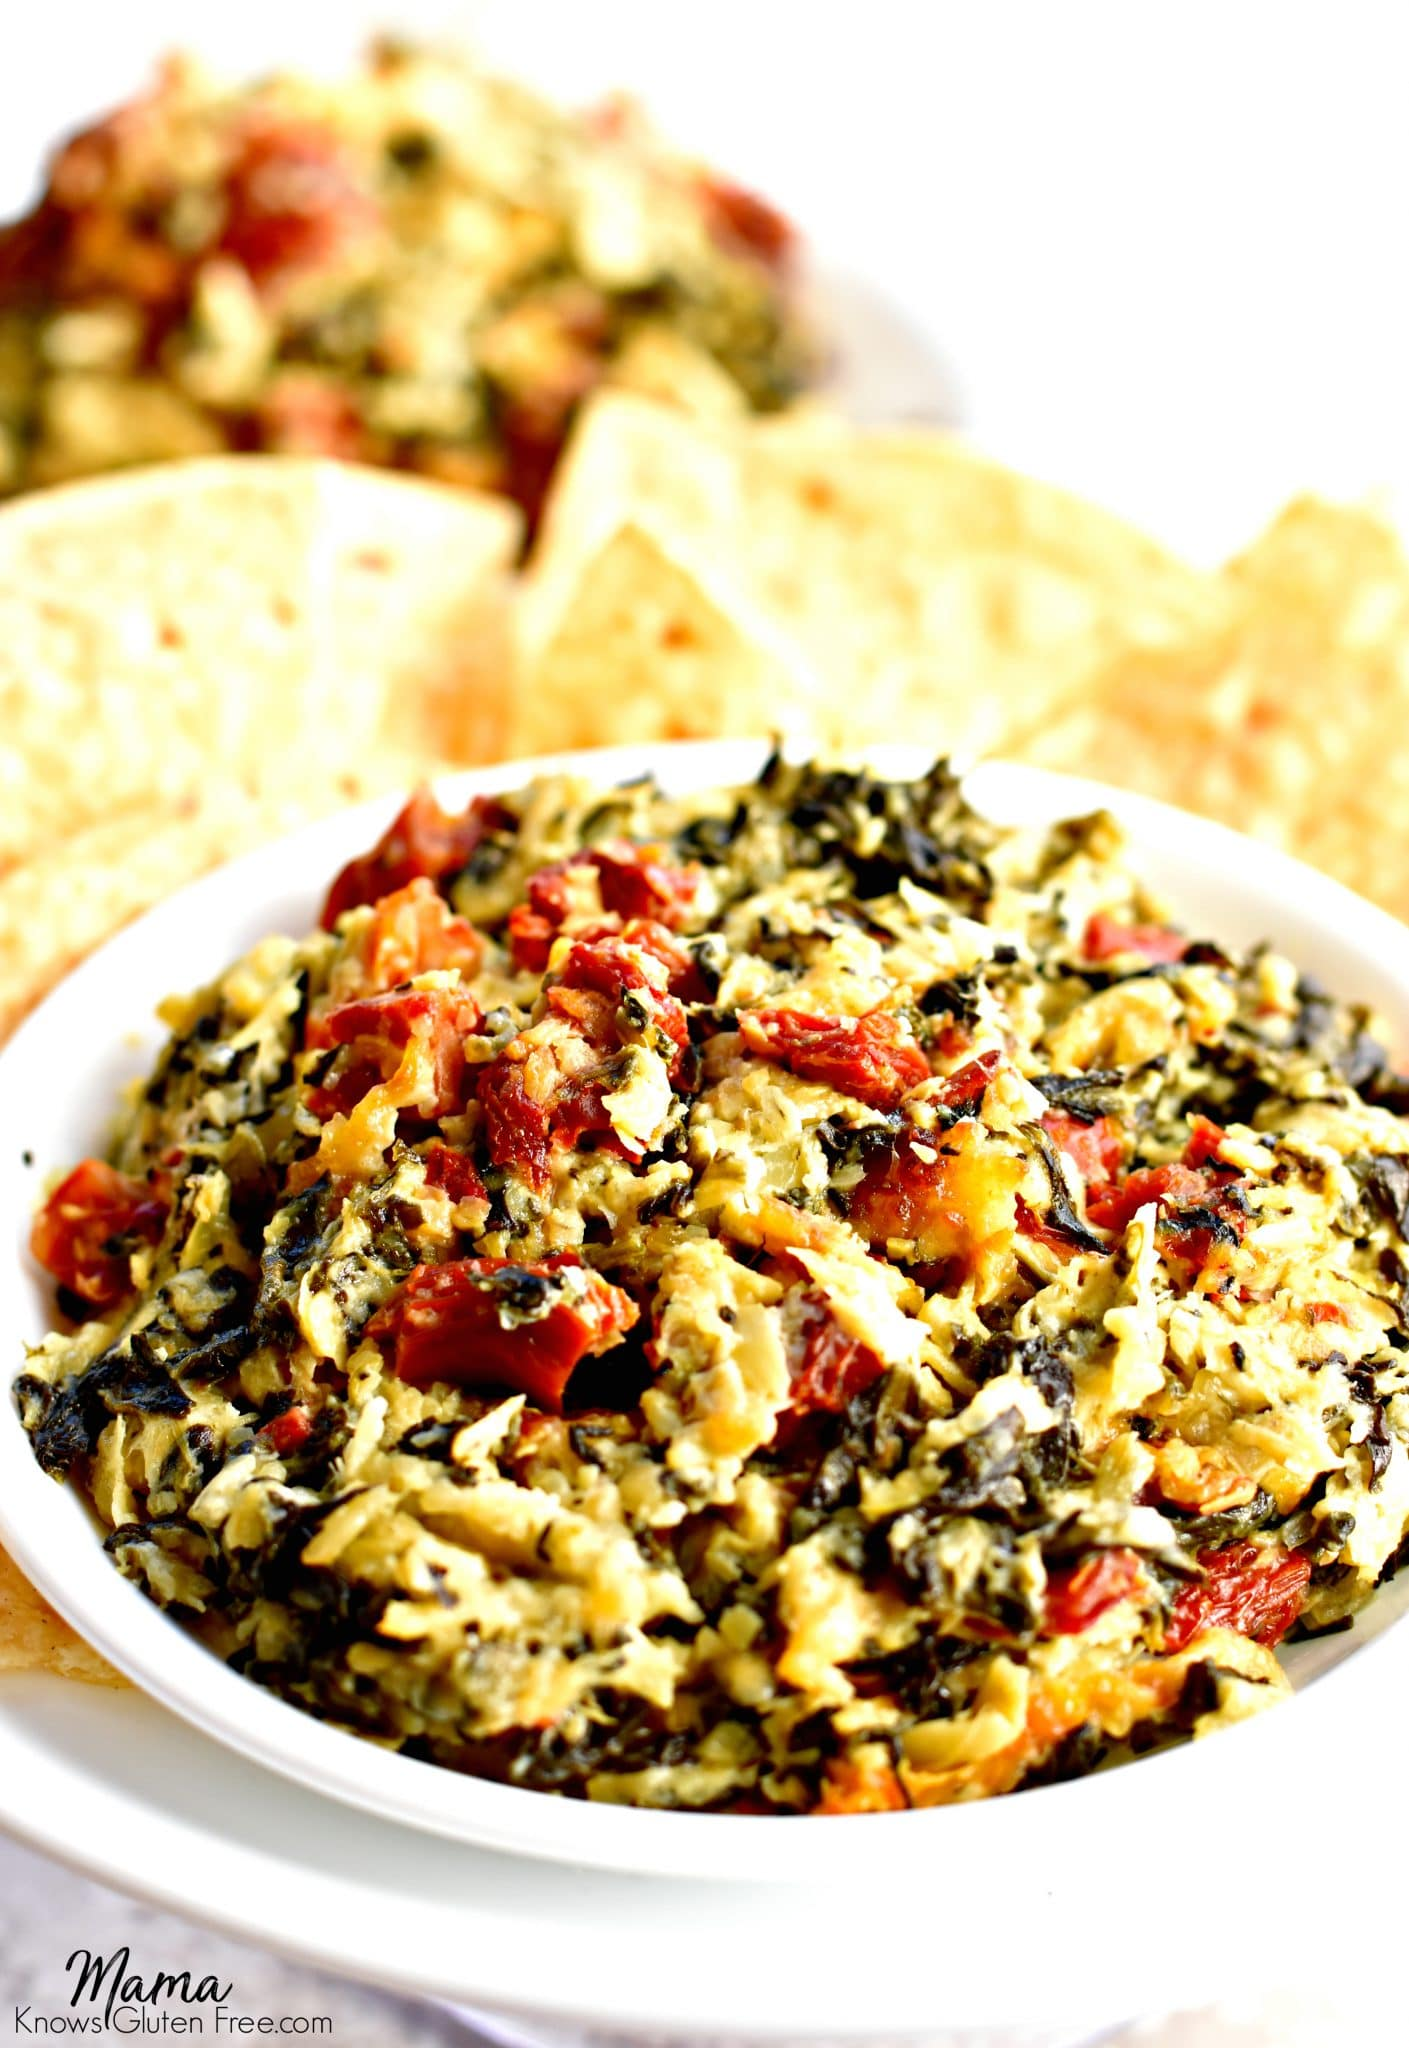 bowl of gluten-free spinach and artichoke dip with corn chips and another serving in the background.